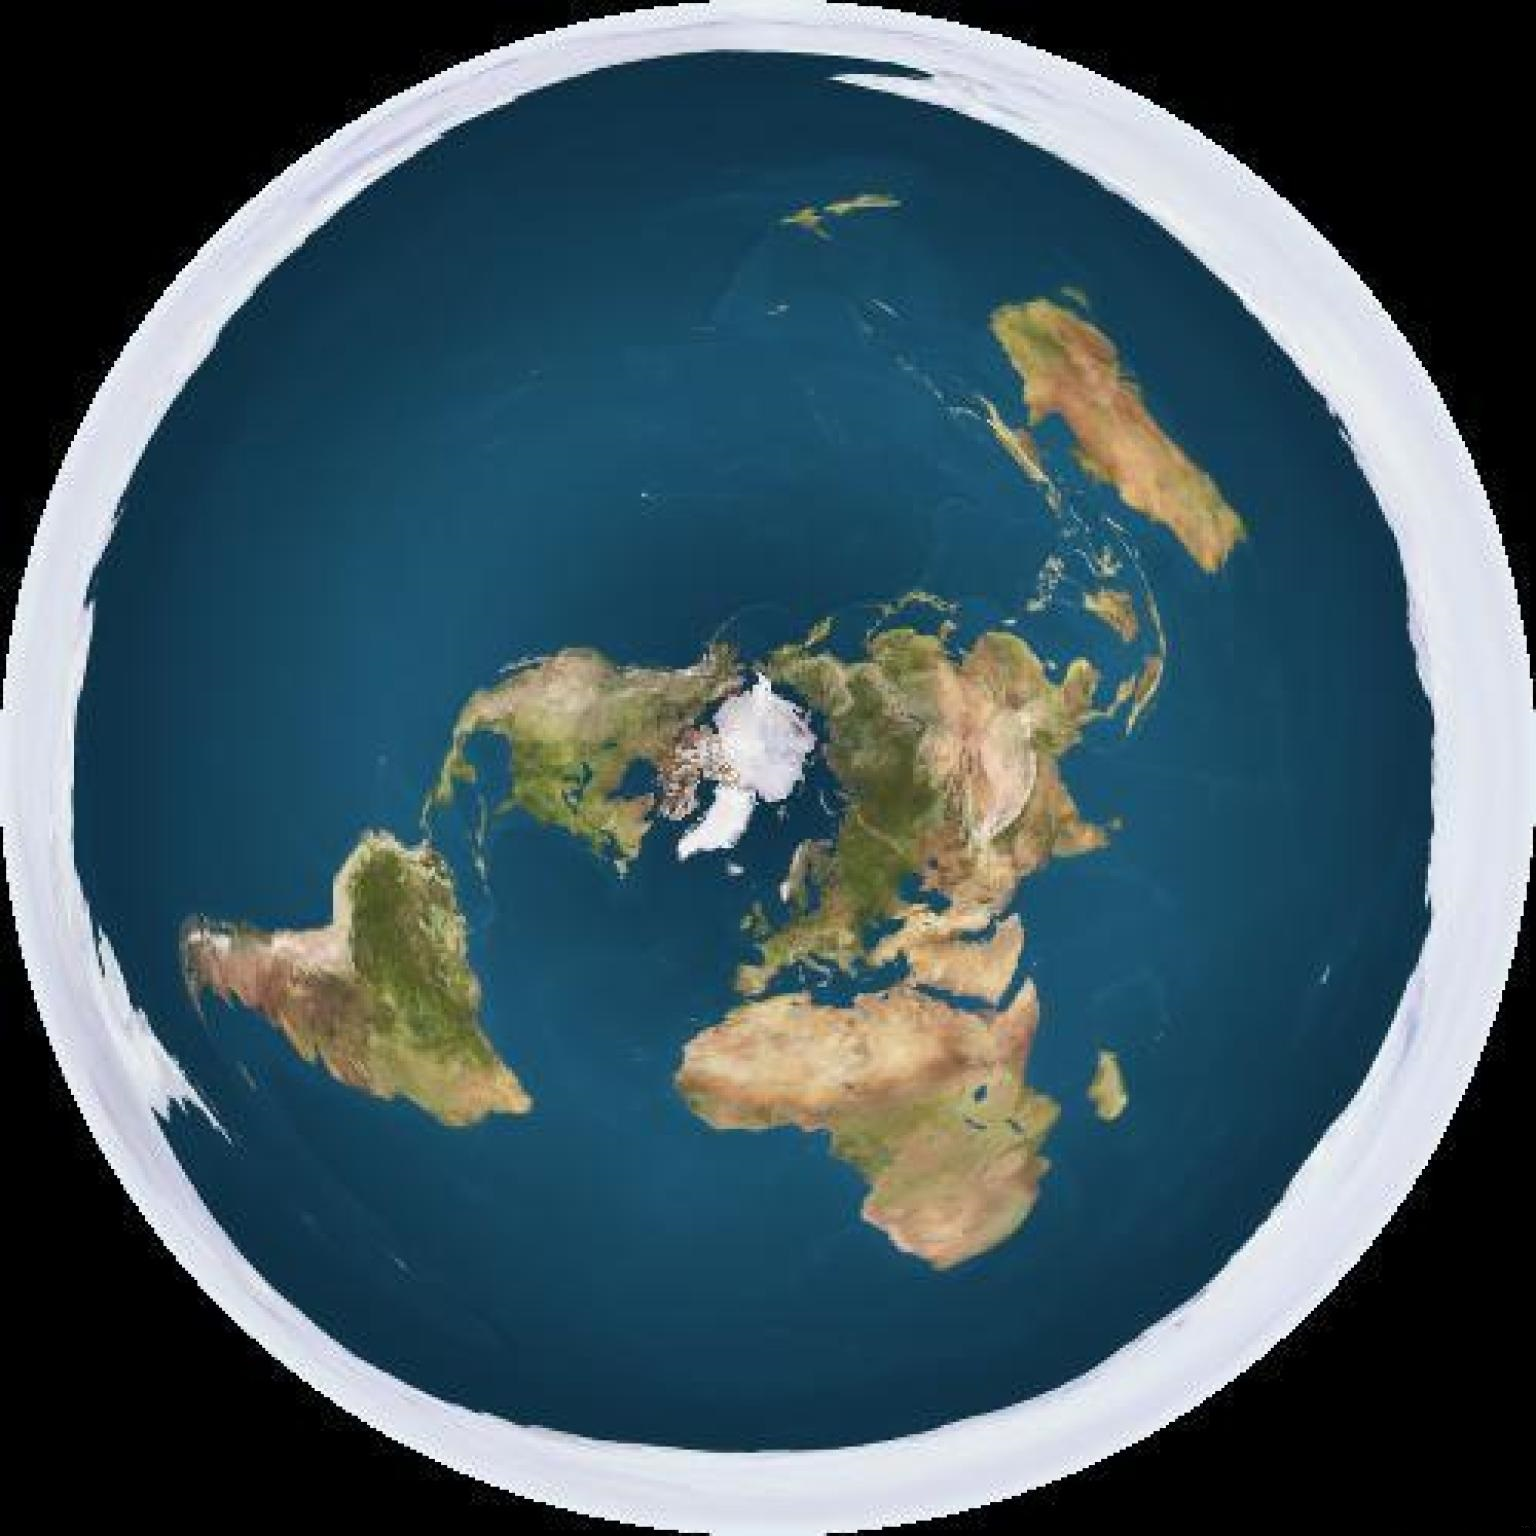 Philip stallings the biblical flat earth the teaching from scripture as you can see above the flat earth depictions are exactly that a circle furthermore notice that in the verse that man is dwelling in the earth publicscrutiny Image collections